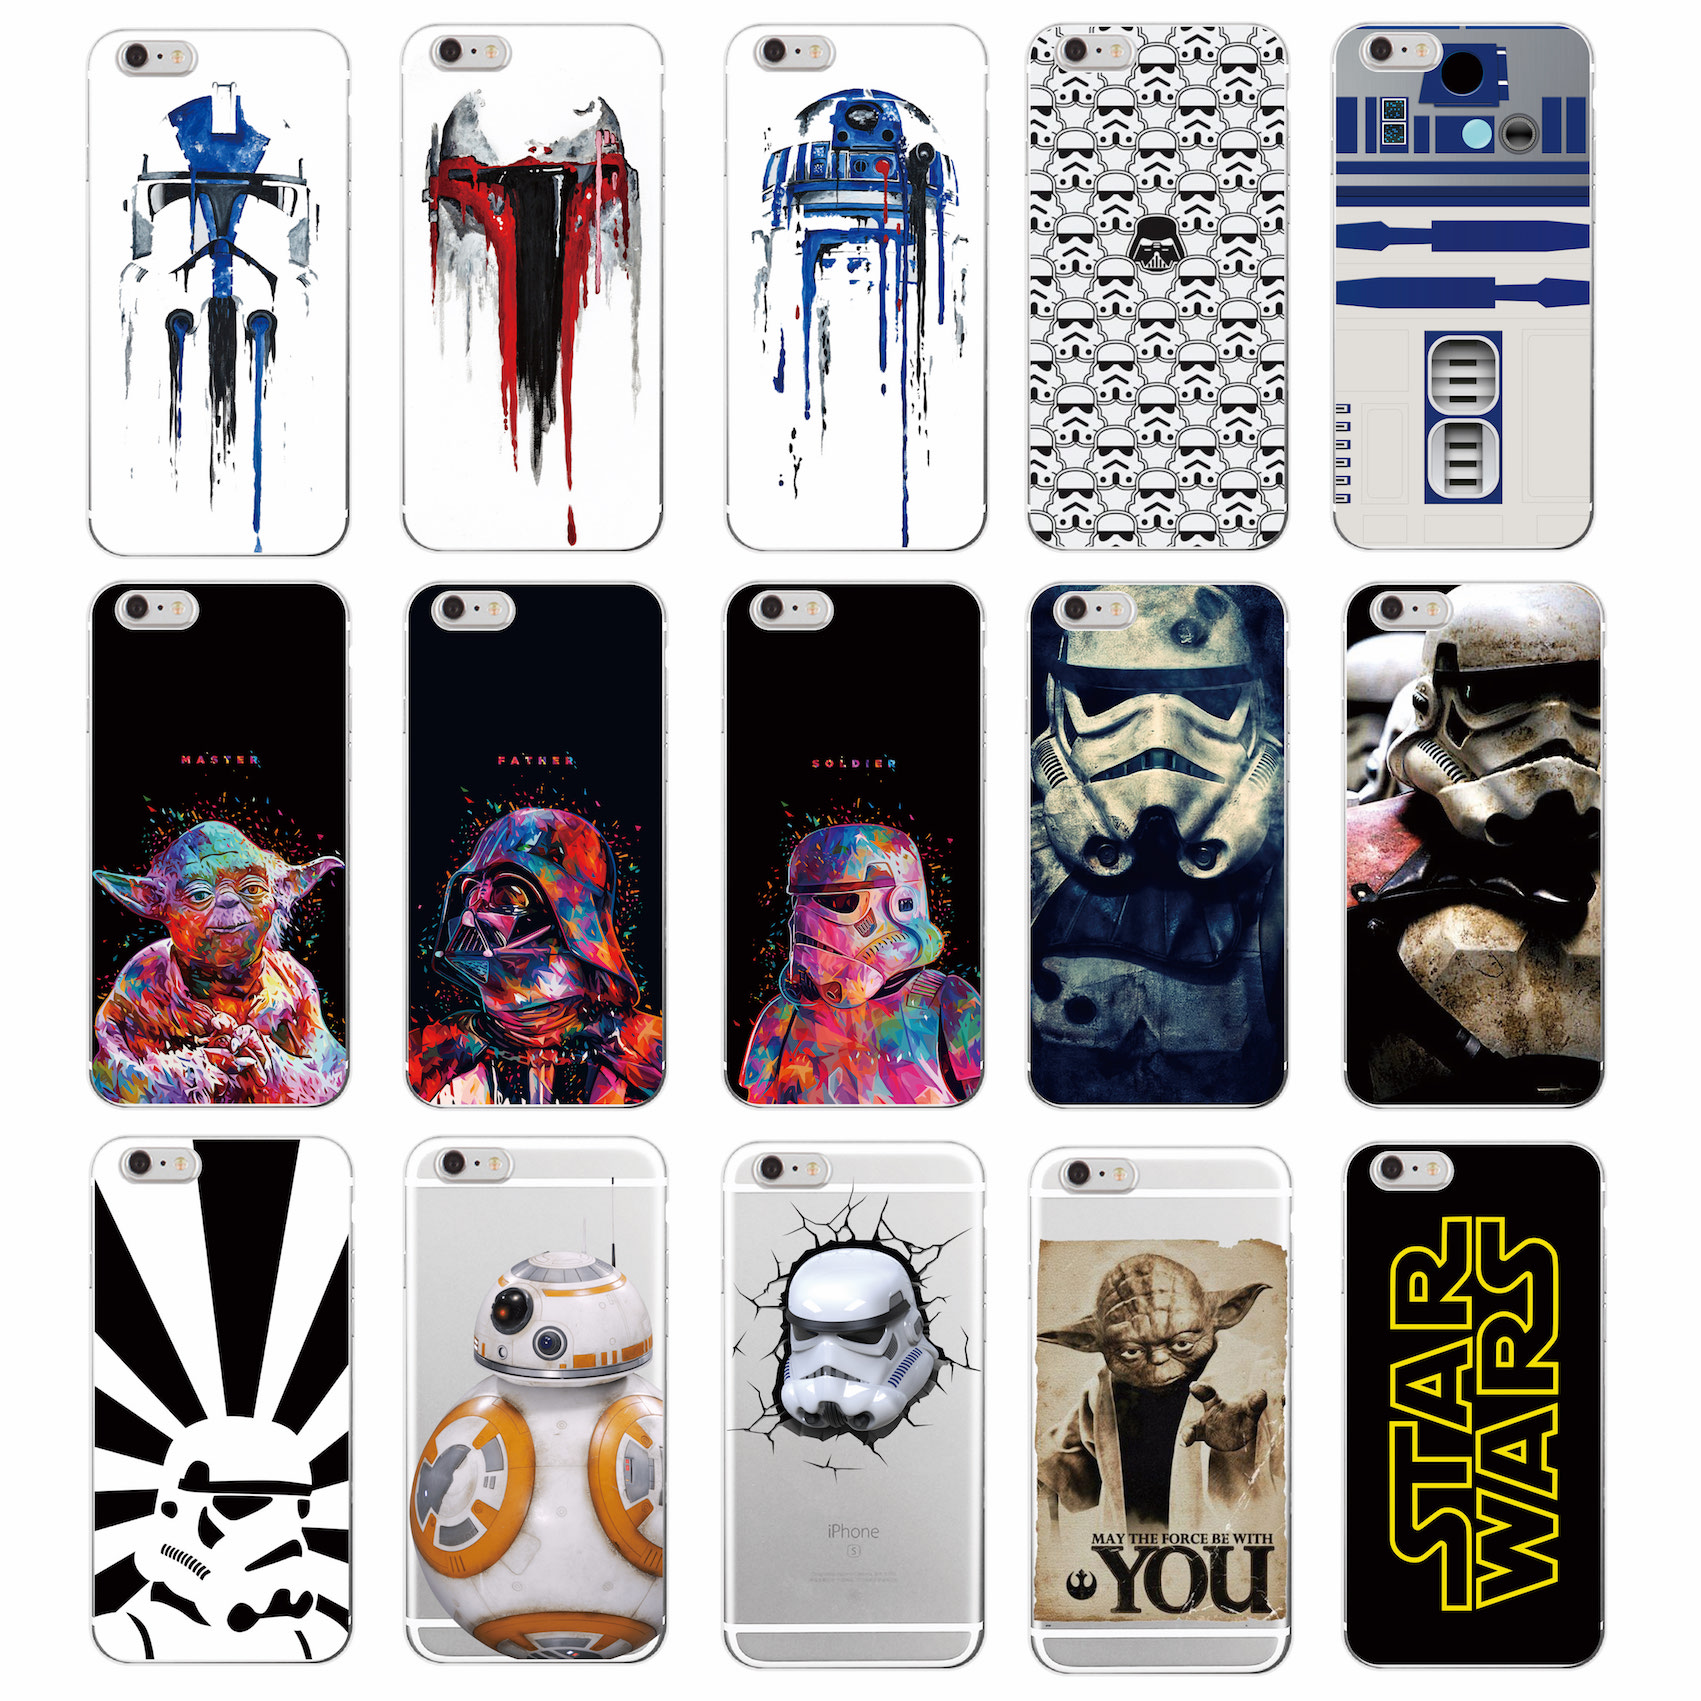 Star Wars Character Movie Storm Trooper Darth Vader Yoda Soft Phone Case For iPhone 7Plus 7 6Plus 6 S 5 S 4S SE 5C